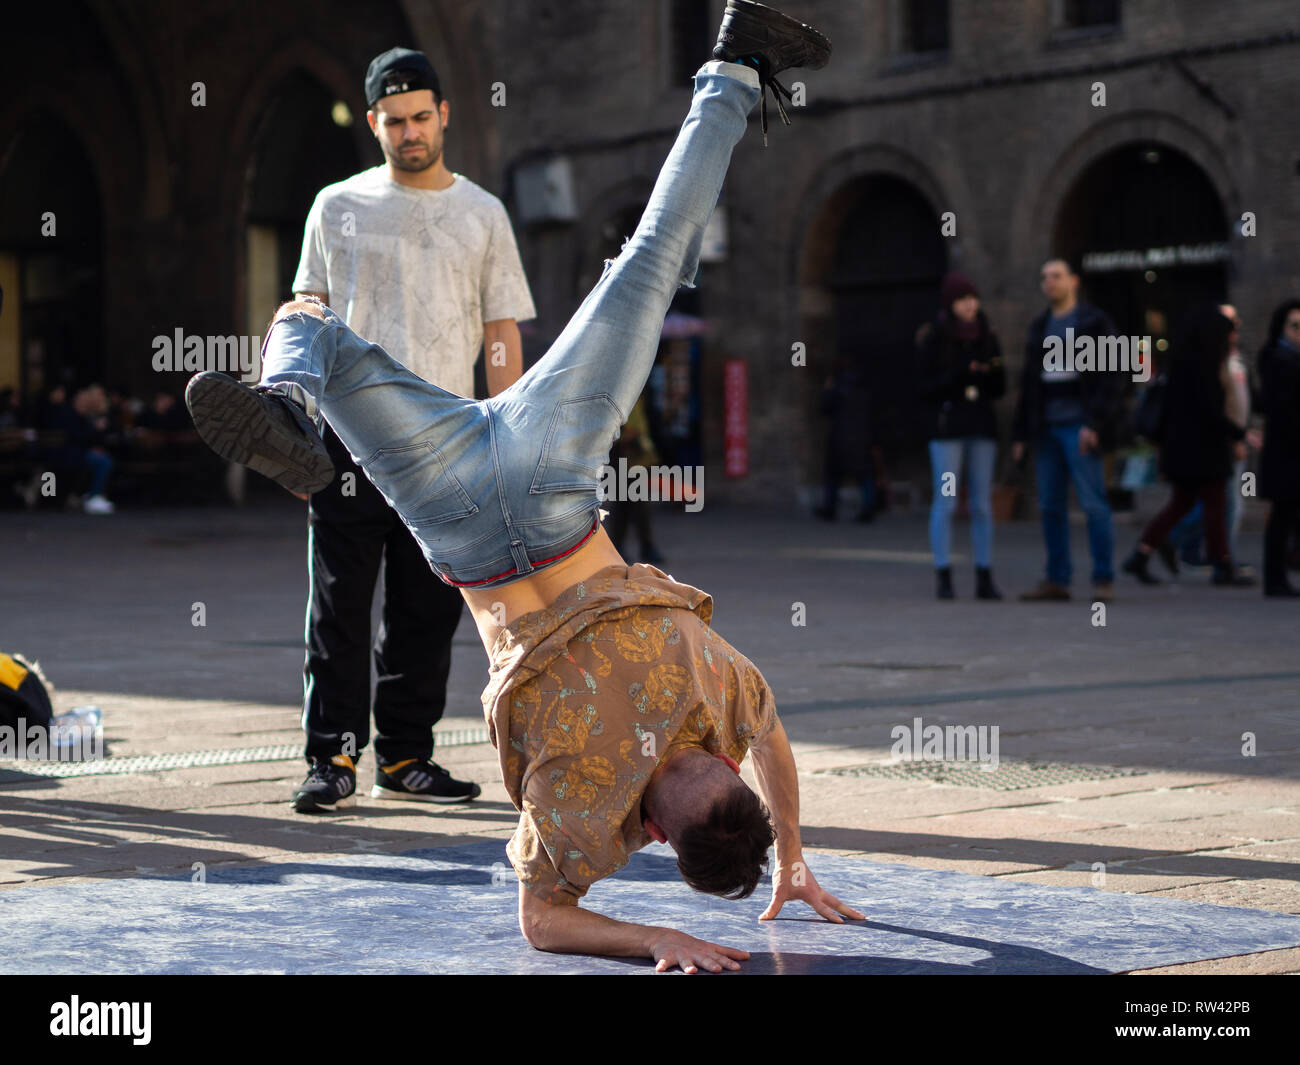 February, 16 2019 Bologna, Italy. Some boys dance break dance in the middle of a street in Bologna, Italy and in front of a church. Stock Photo